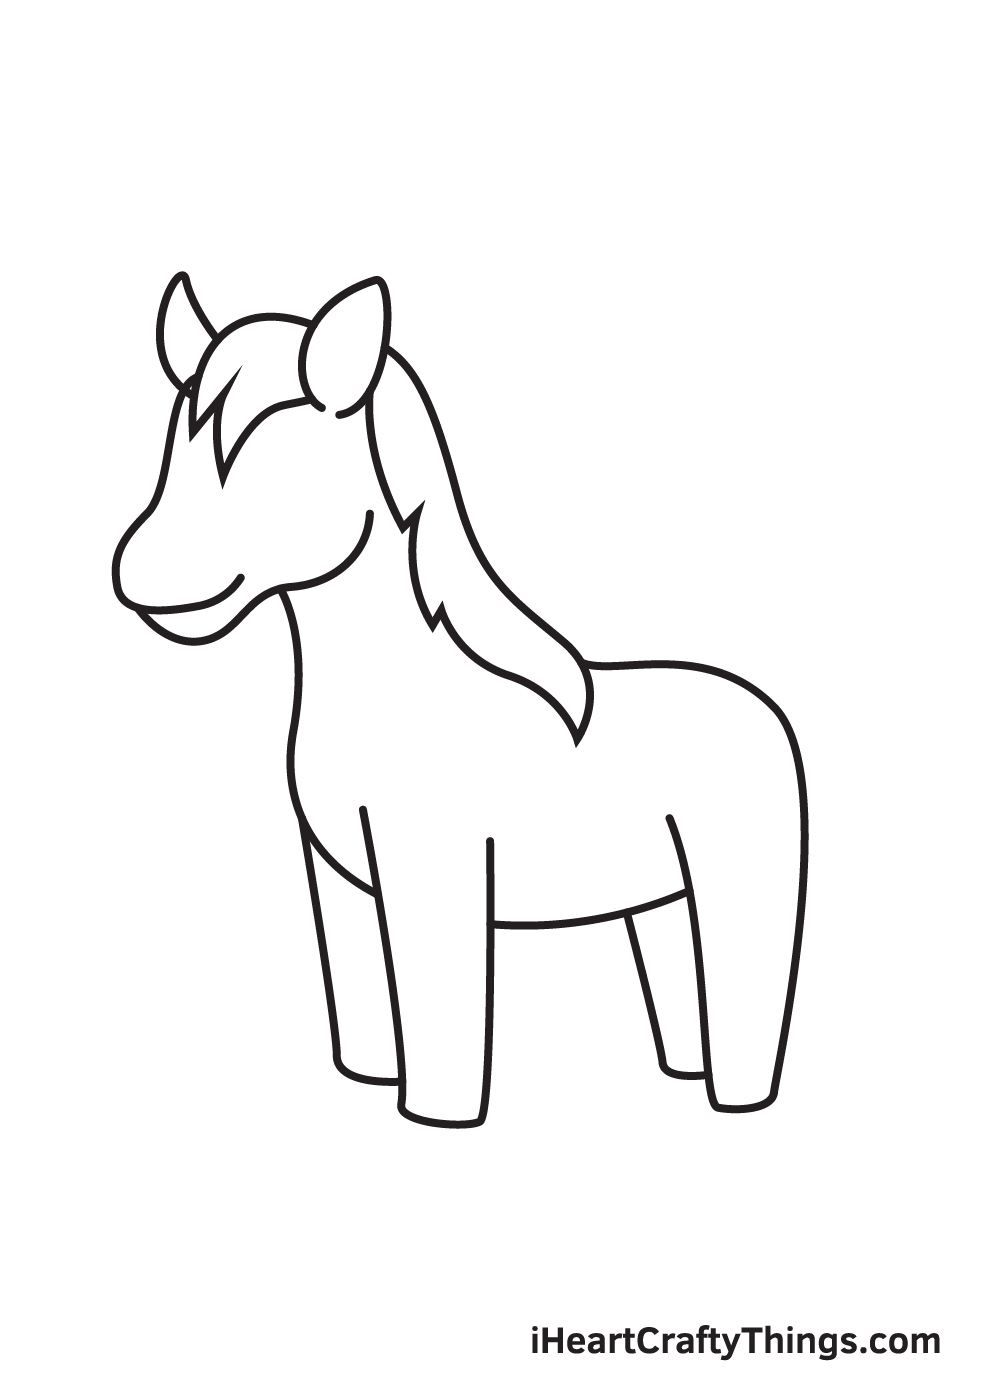 horse drawing - step 6